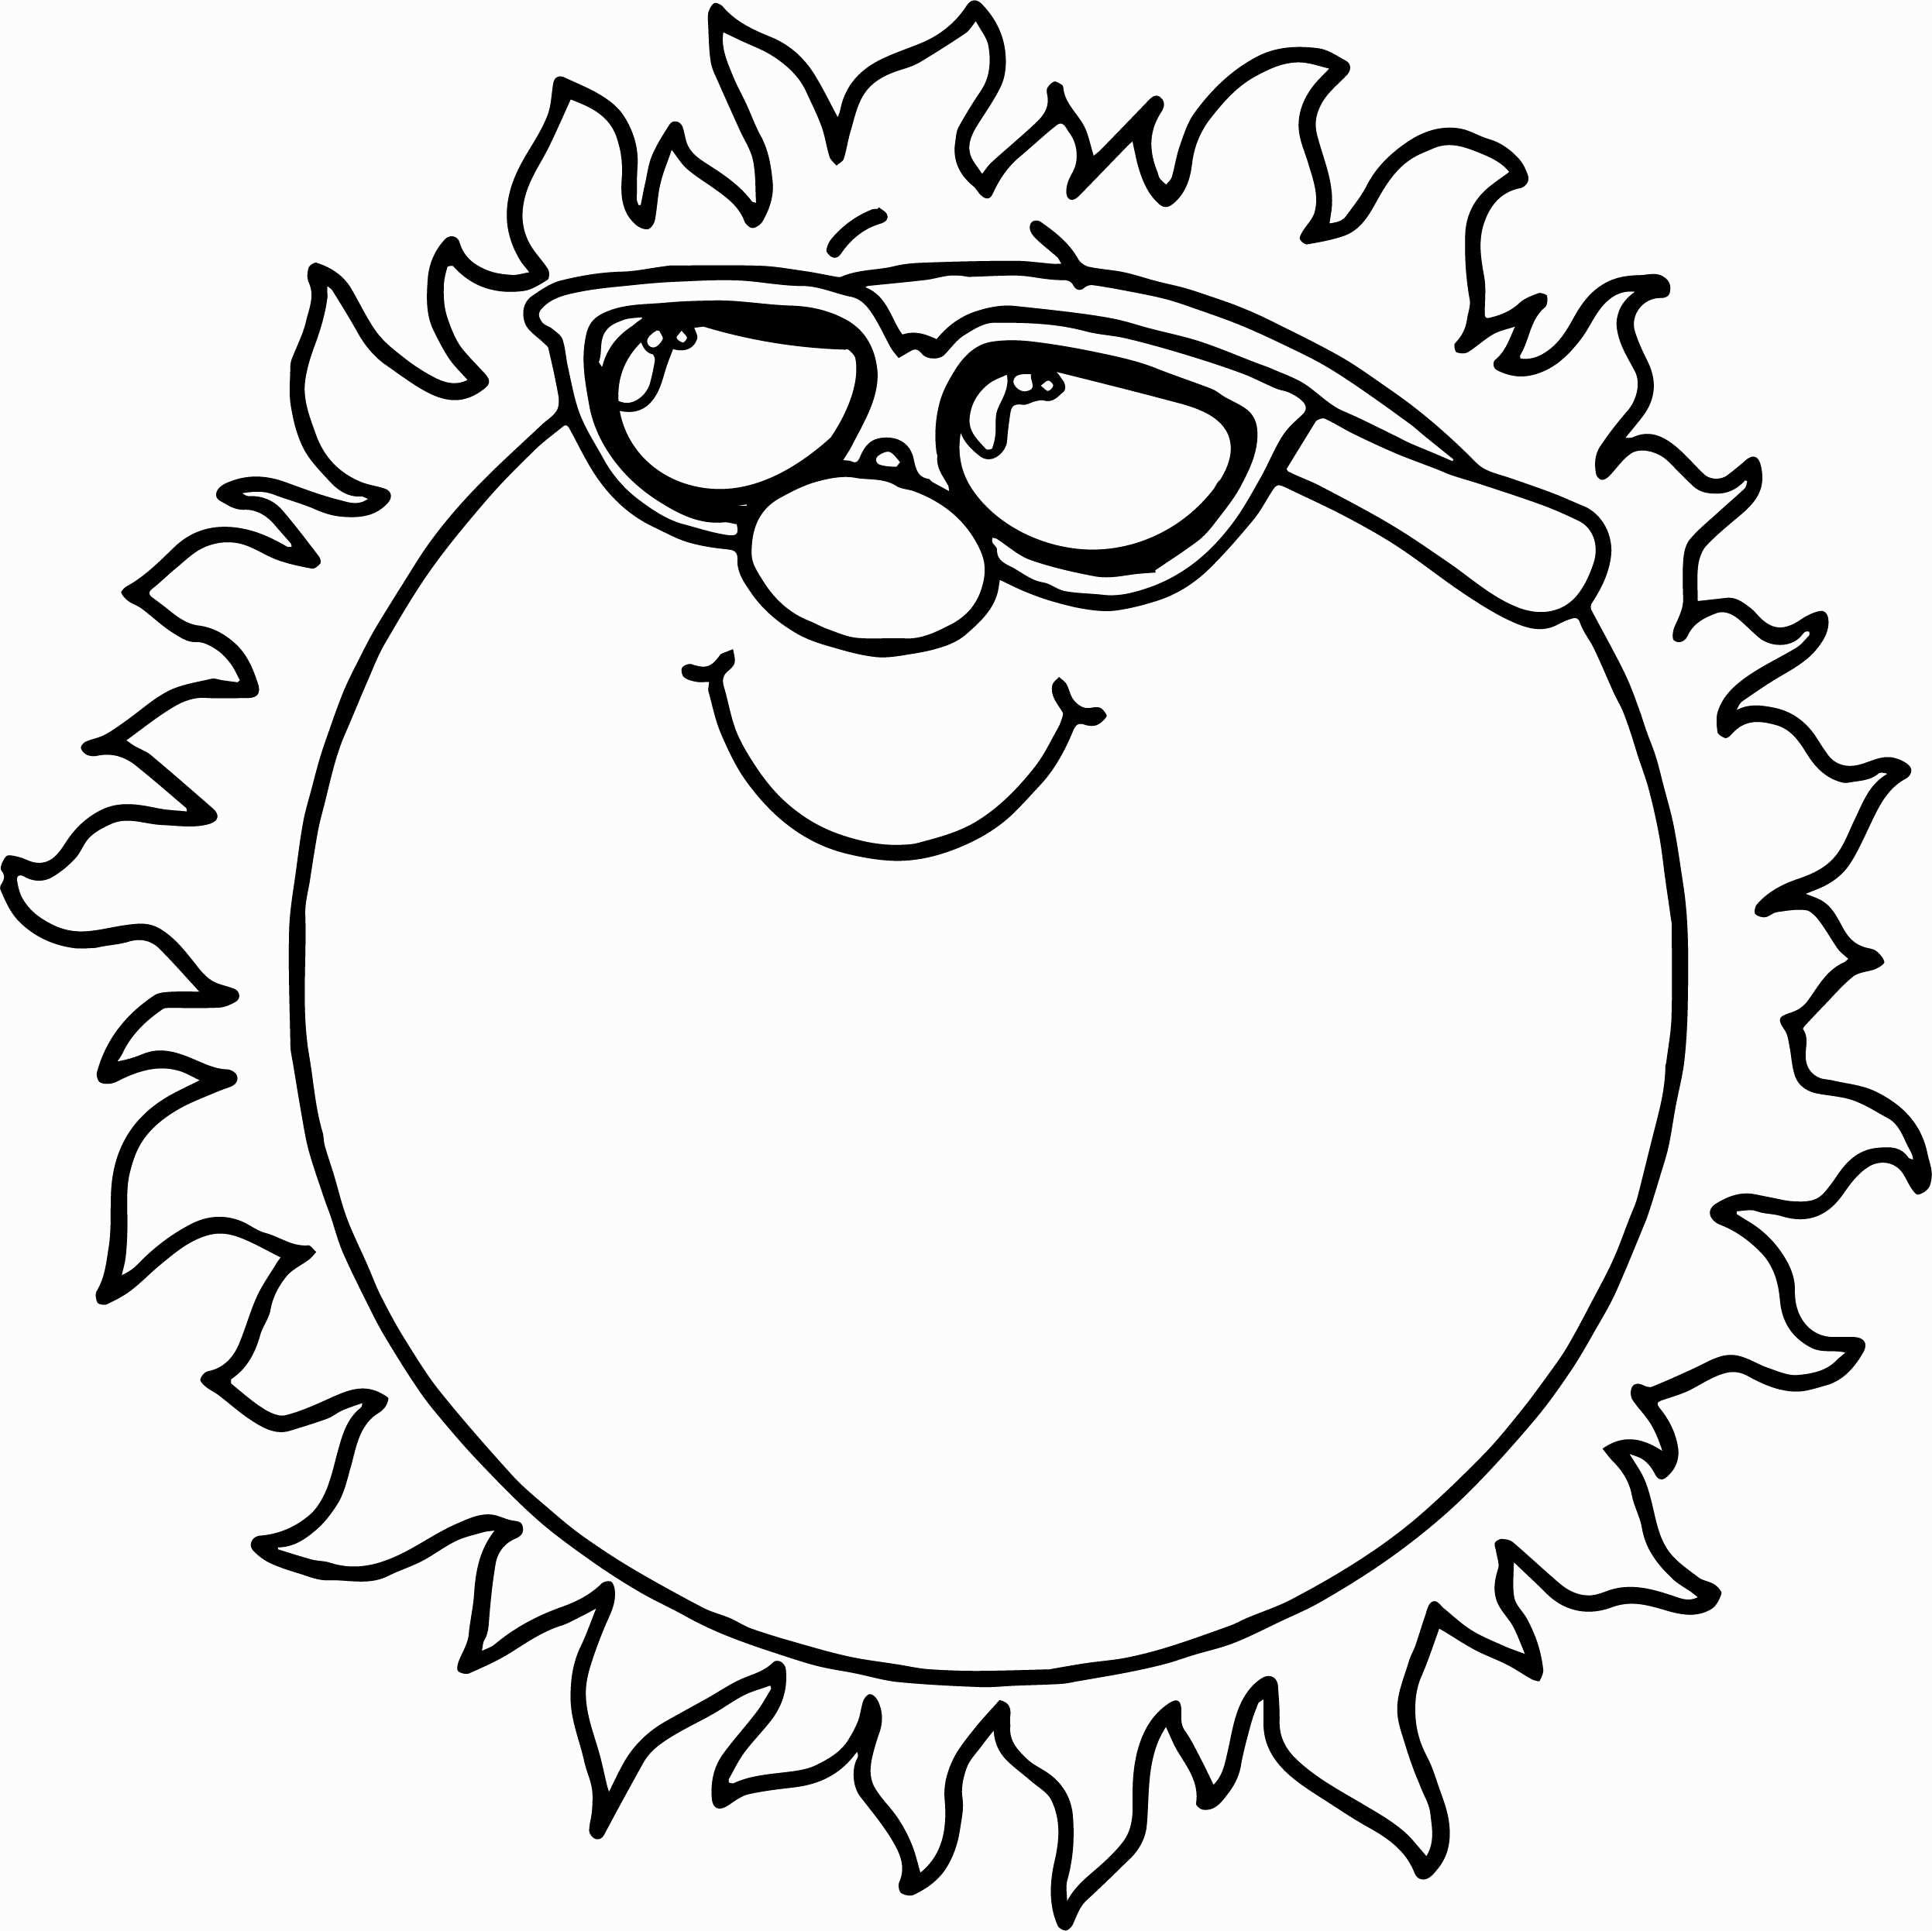 Best ideas about Sun Preschool Coloring Sheets . Save or Pin Free Printable Solar System Coloring Pages For Kids Now.